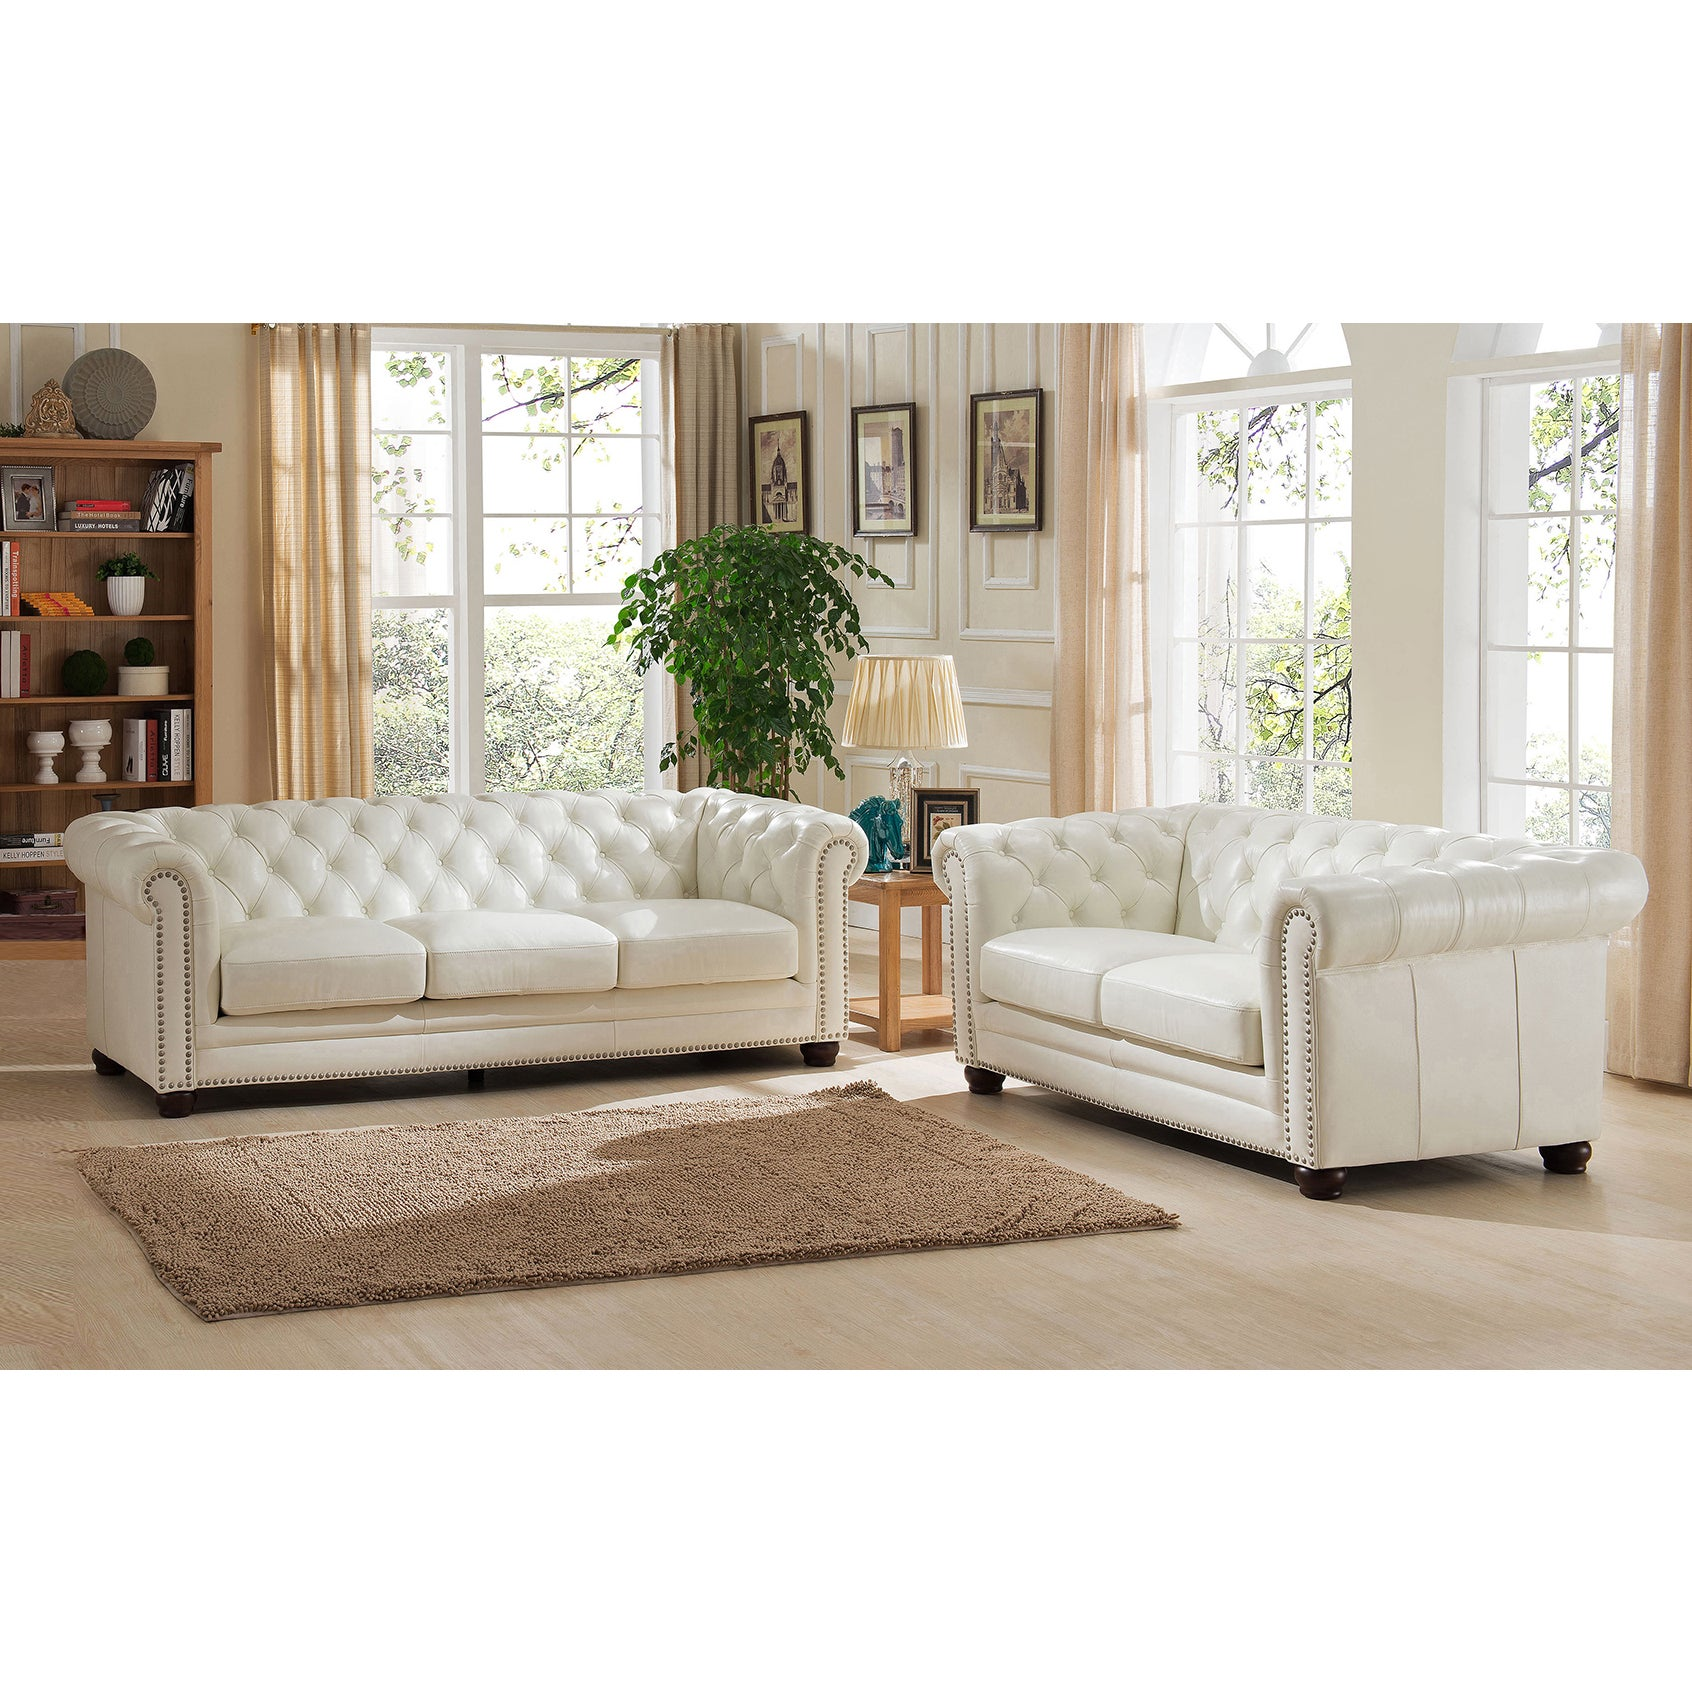 Nashville White Leather Chesterfield Sofa and Loveseat Set - Free ...